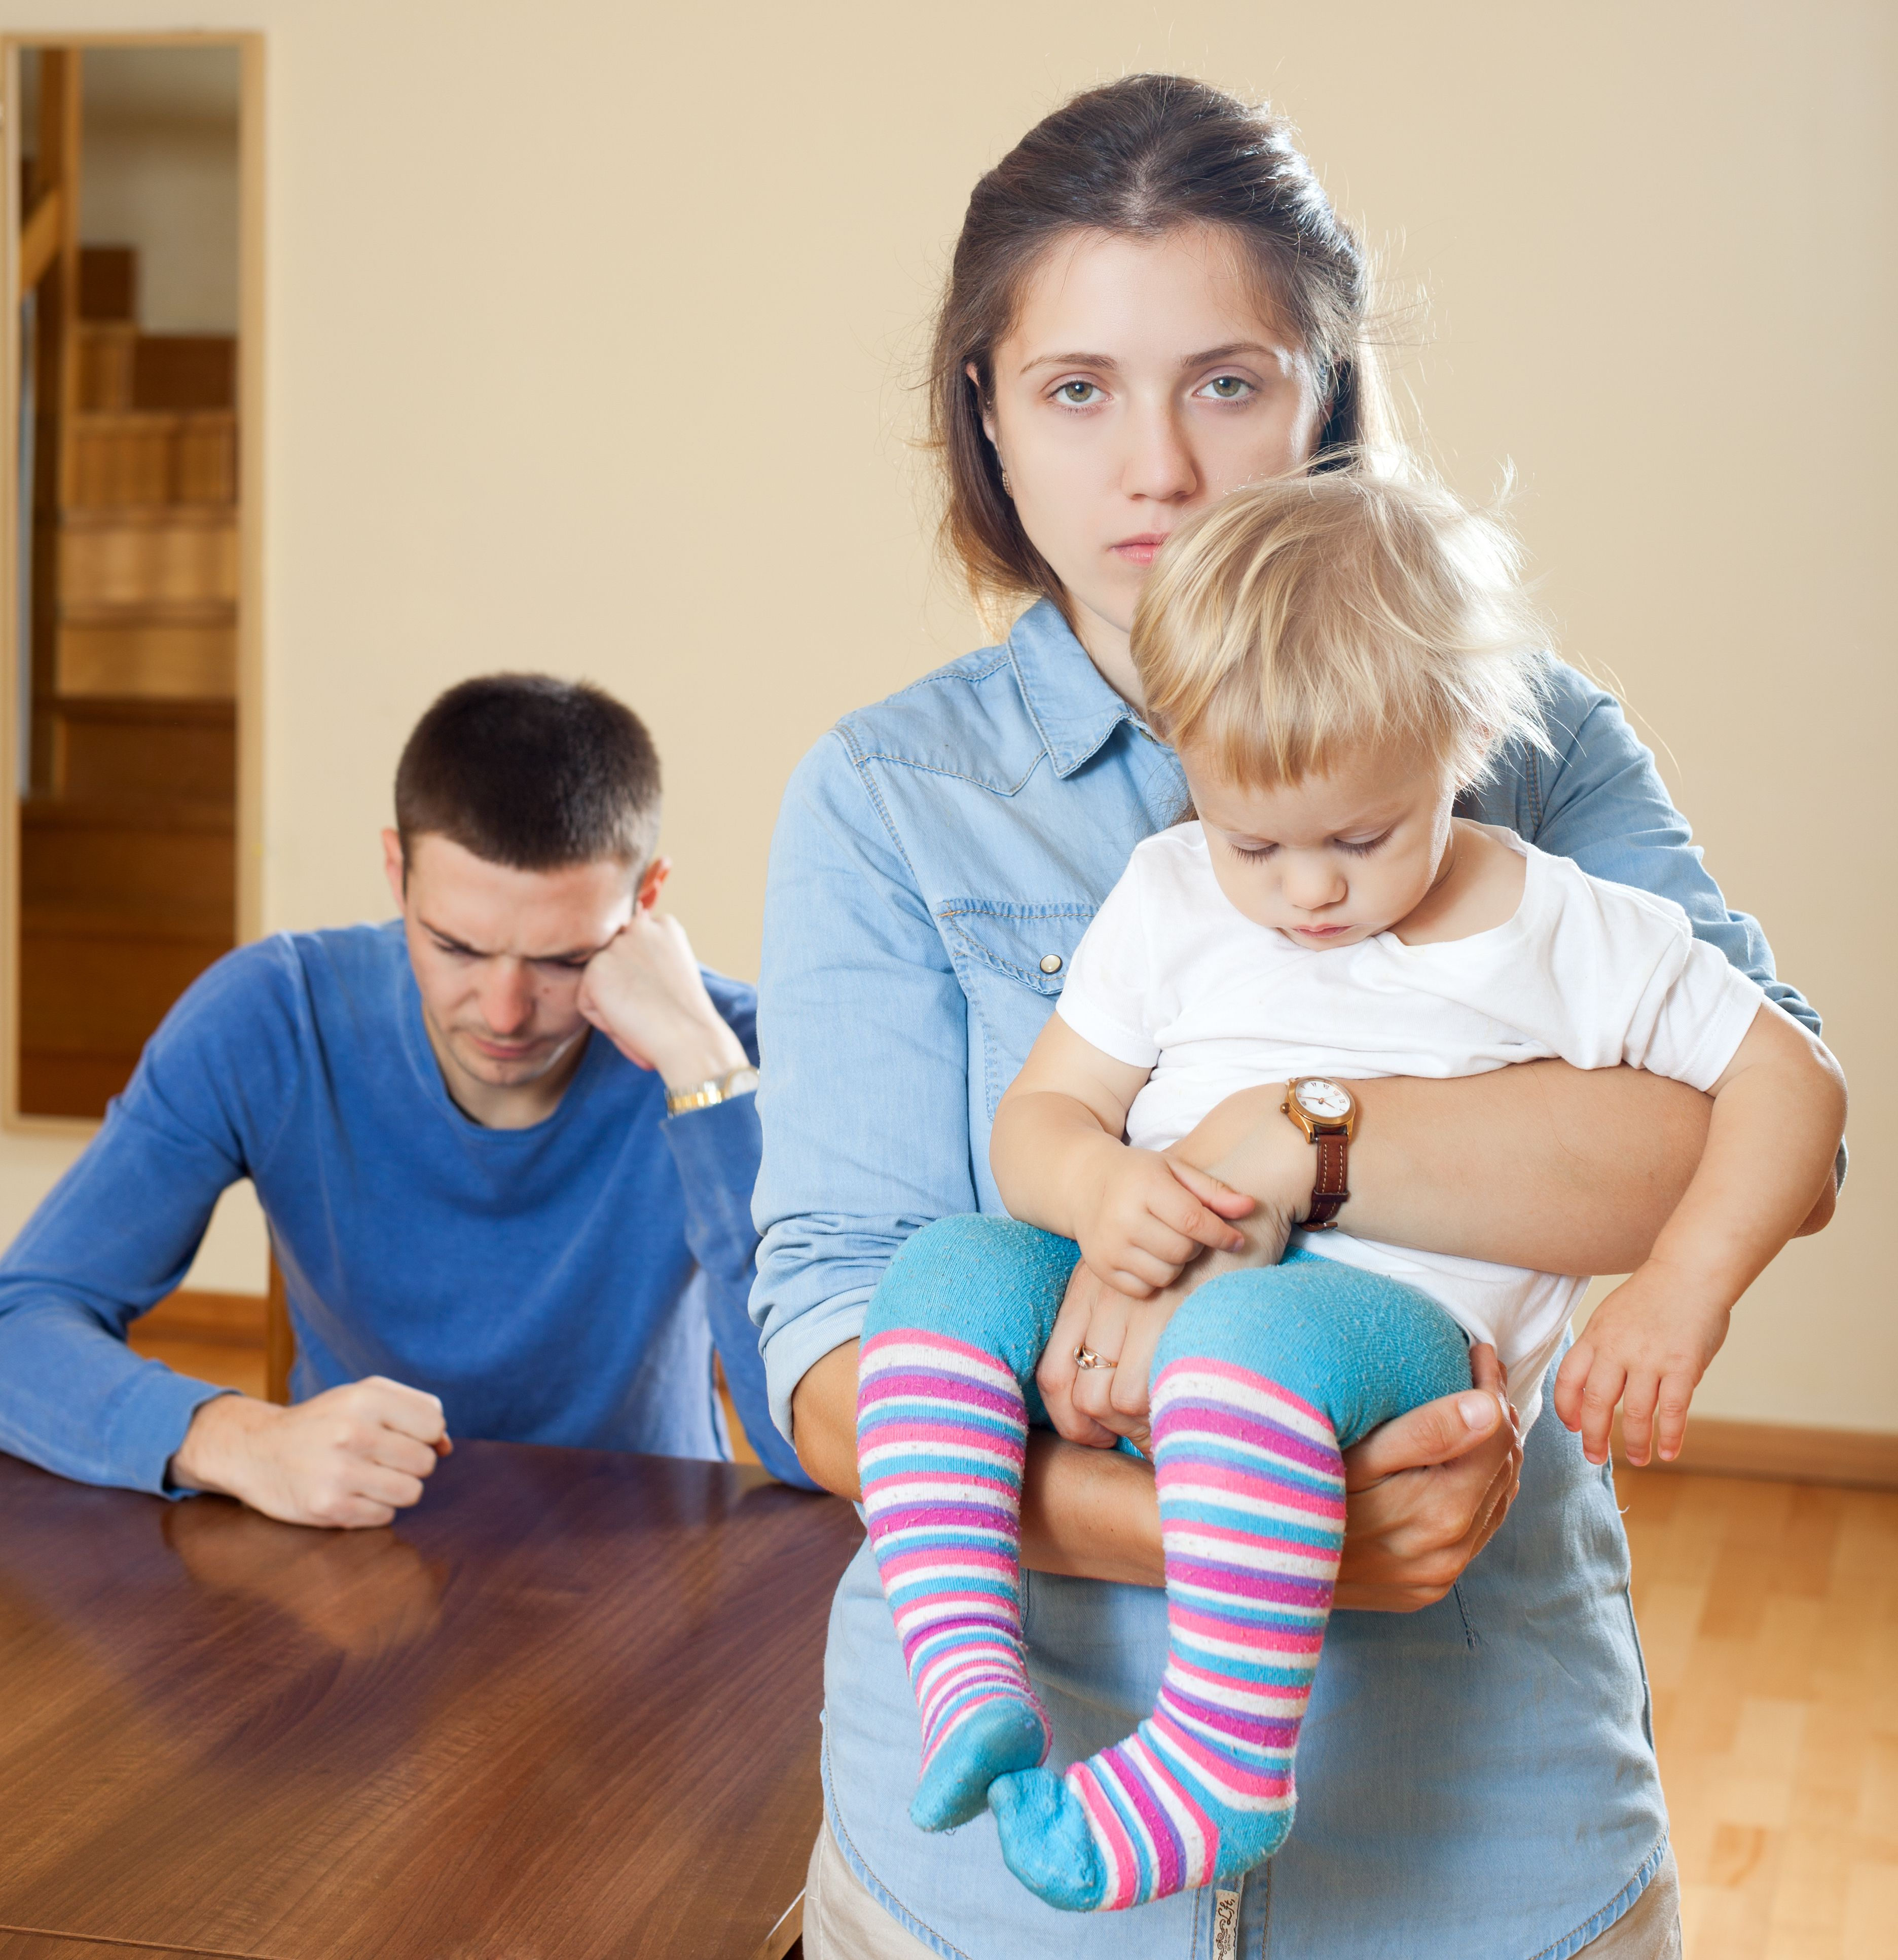 A woman carrying her baby while a man sits behind.   Source: Shutterstock